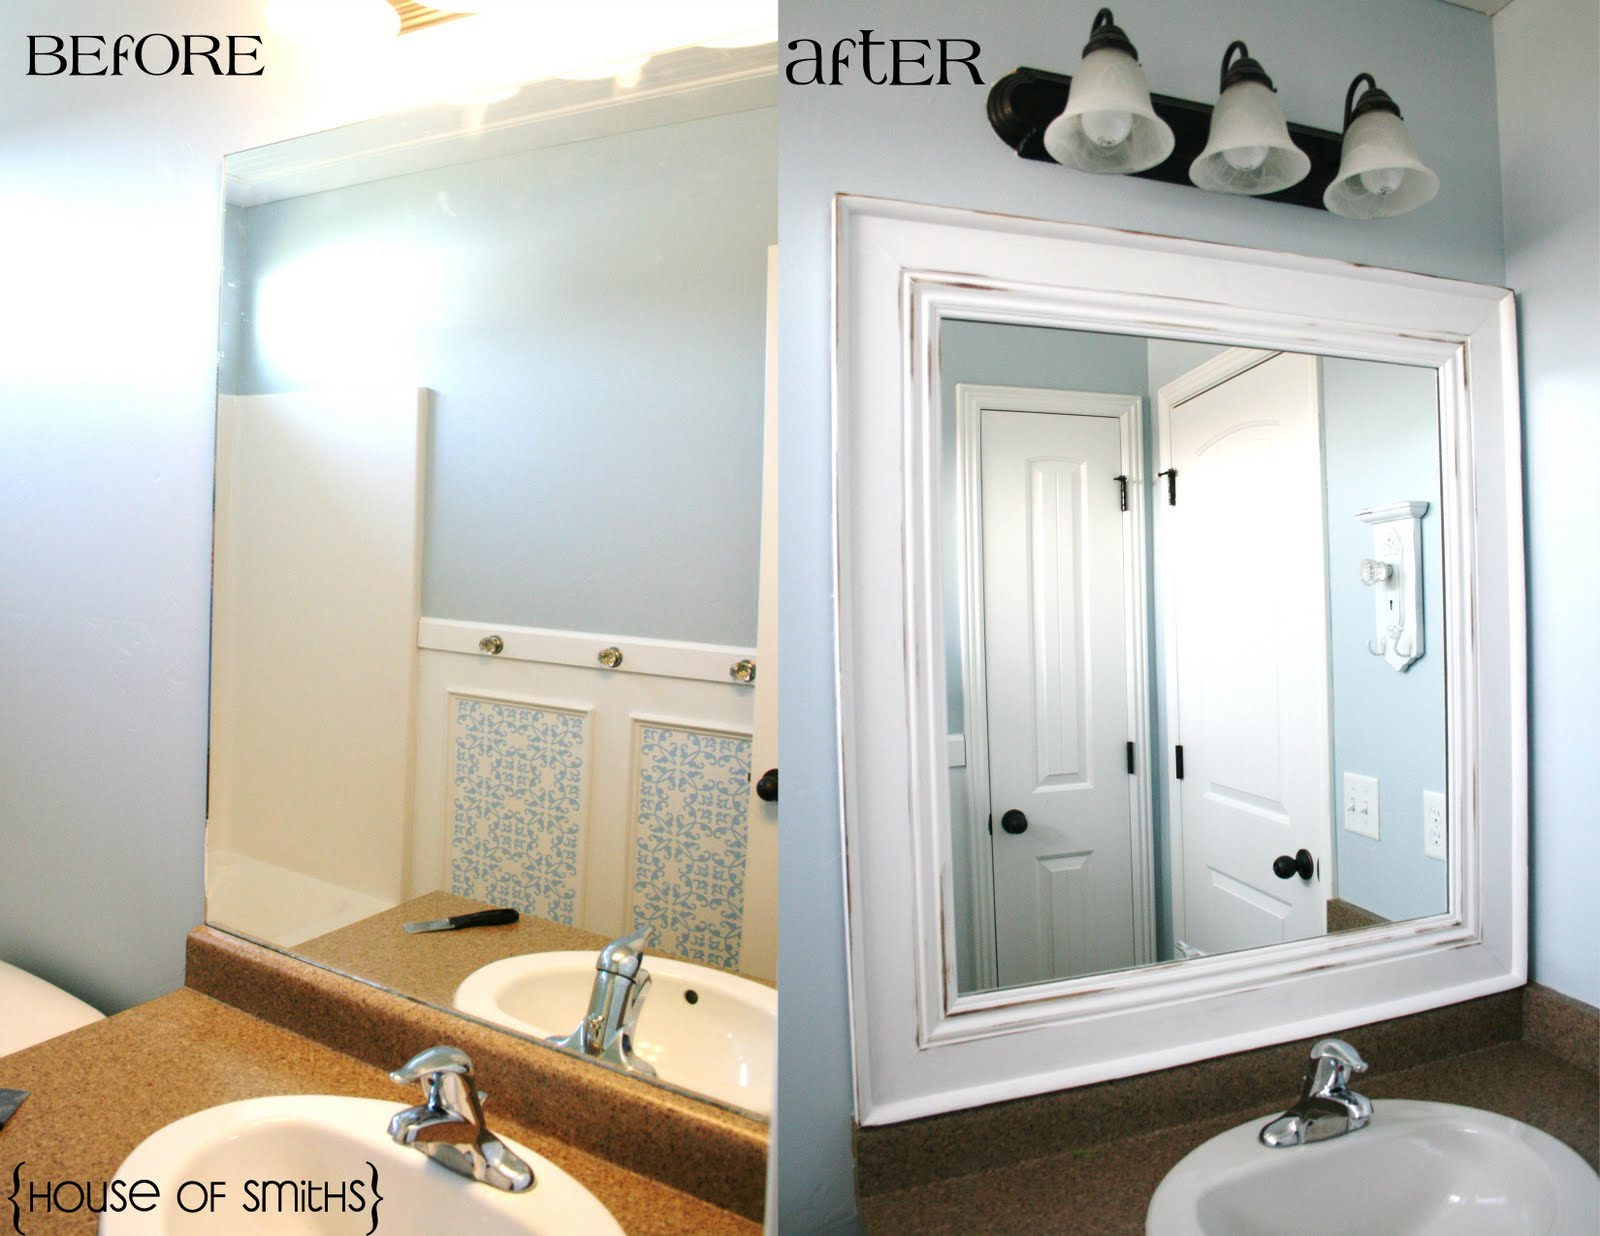 Diy framed mirror tutorial Frames for bathroom wall mirrors